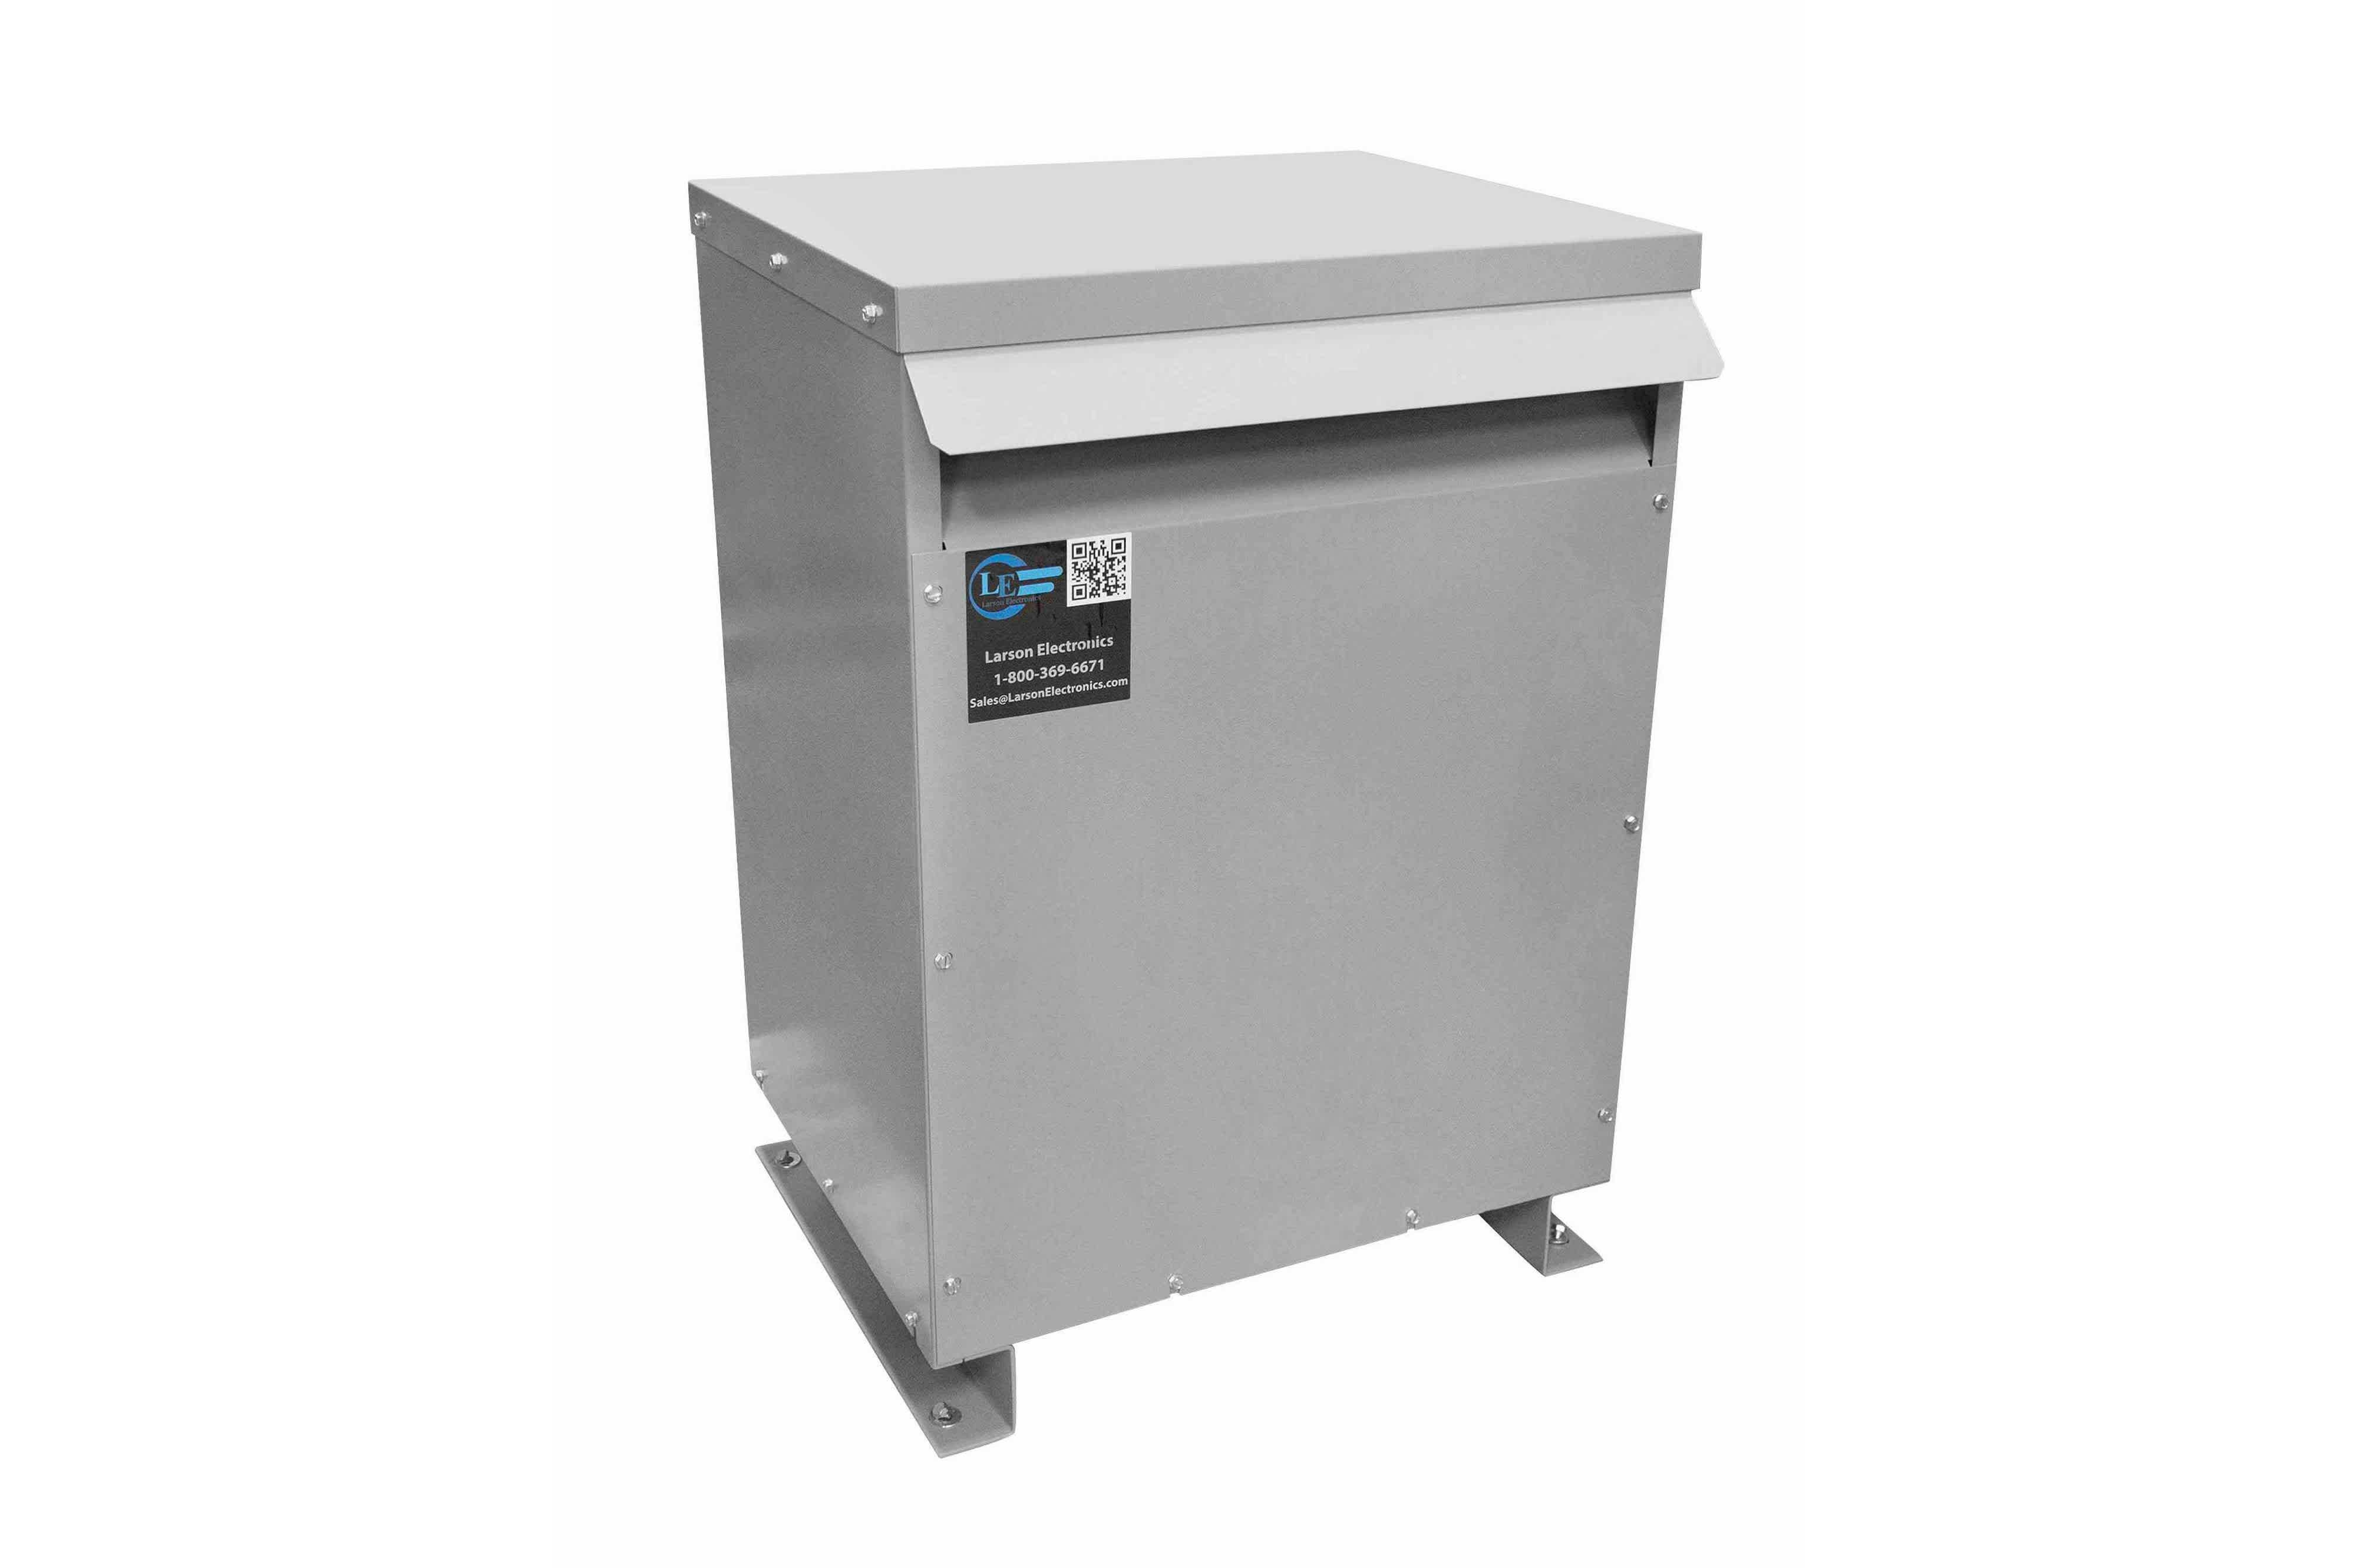 1000 kVA 3PH Isolation Transformer, 380V Delta Primary, 600V Delta Secondary, N3R, Ventilated, 60 Hz